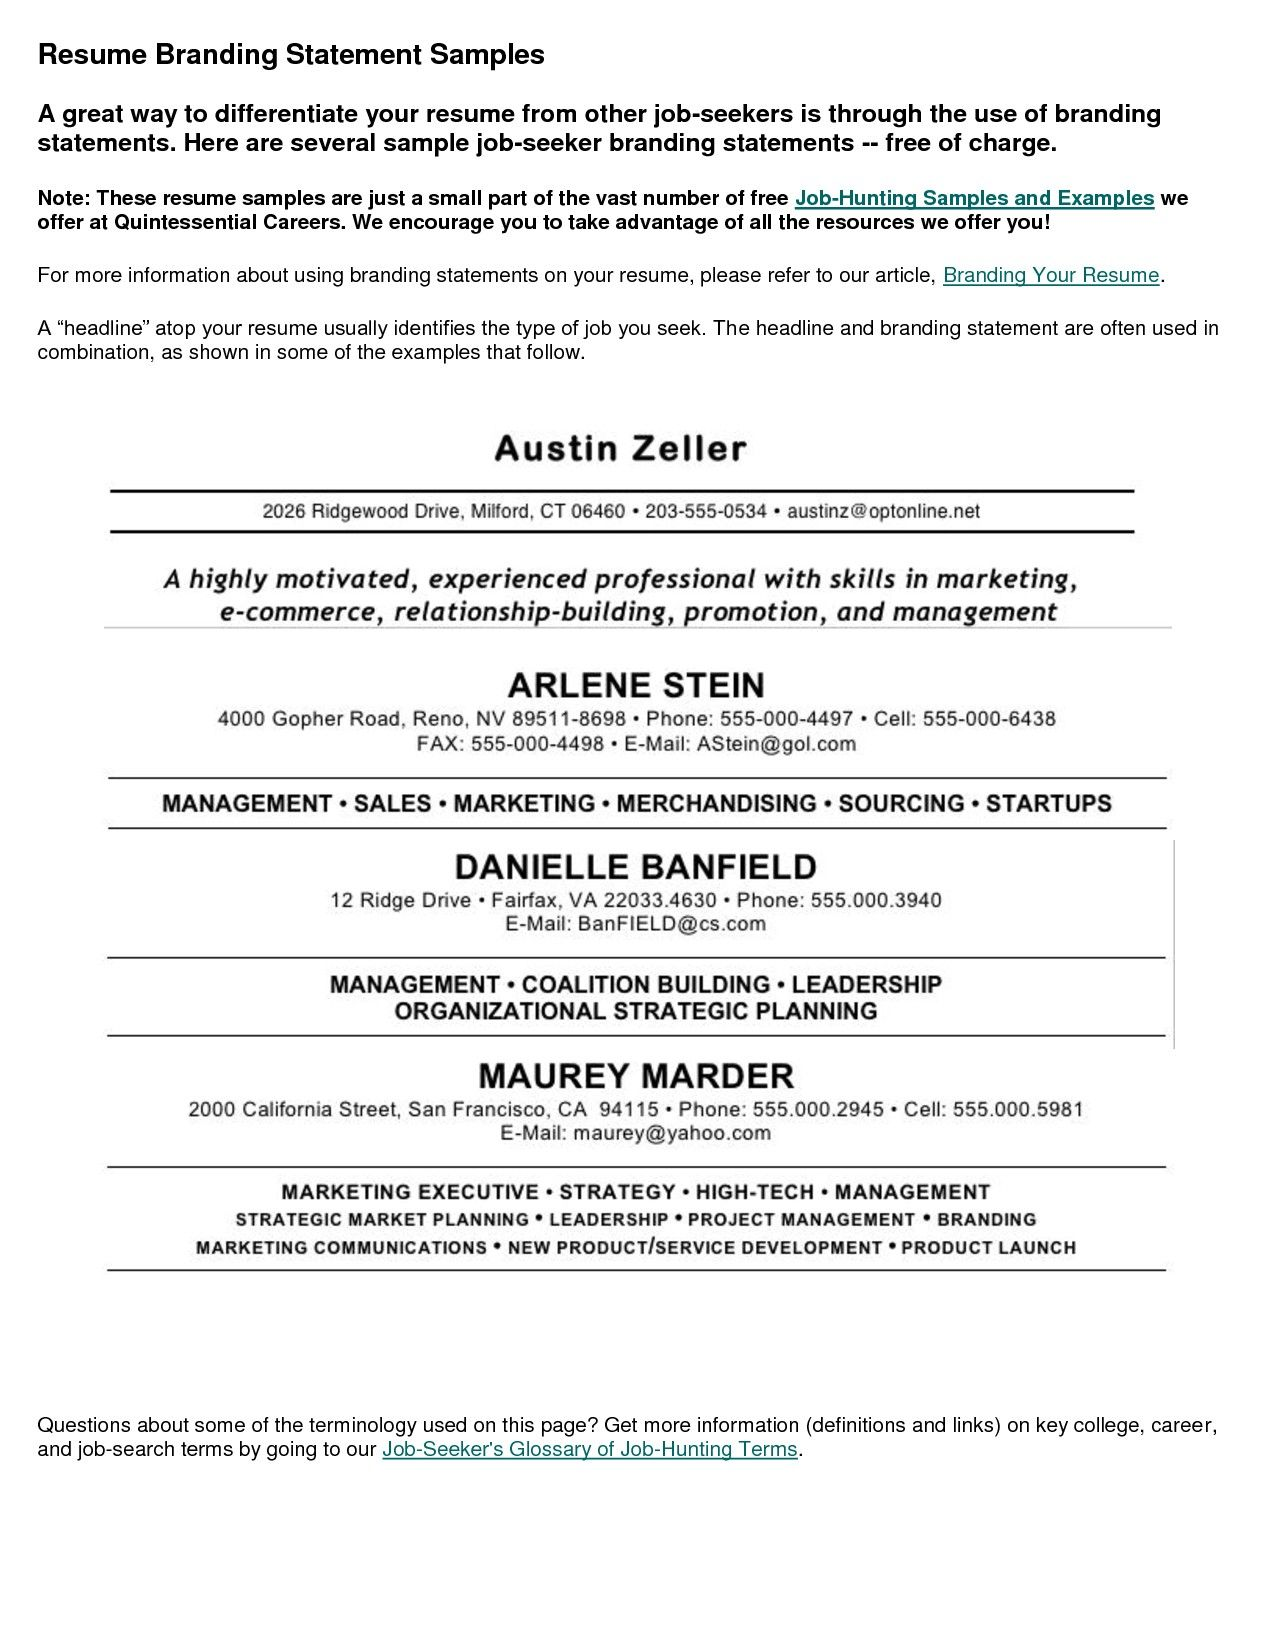 Basic Resume Template 2018 Job Resume Sample  Httpwwwresumecareerjobresumesample